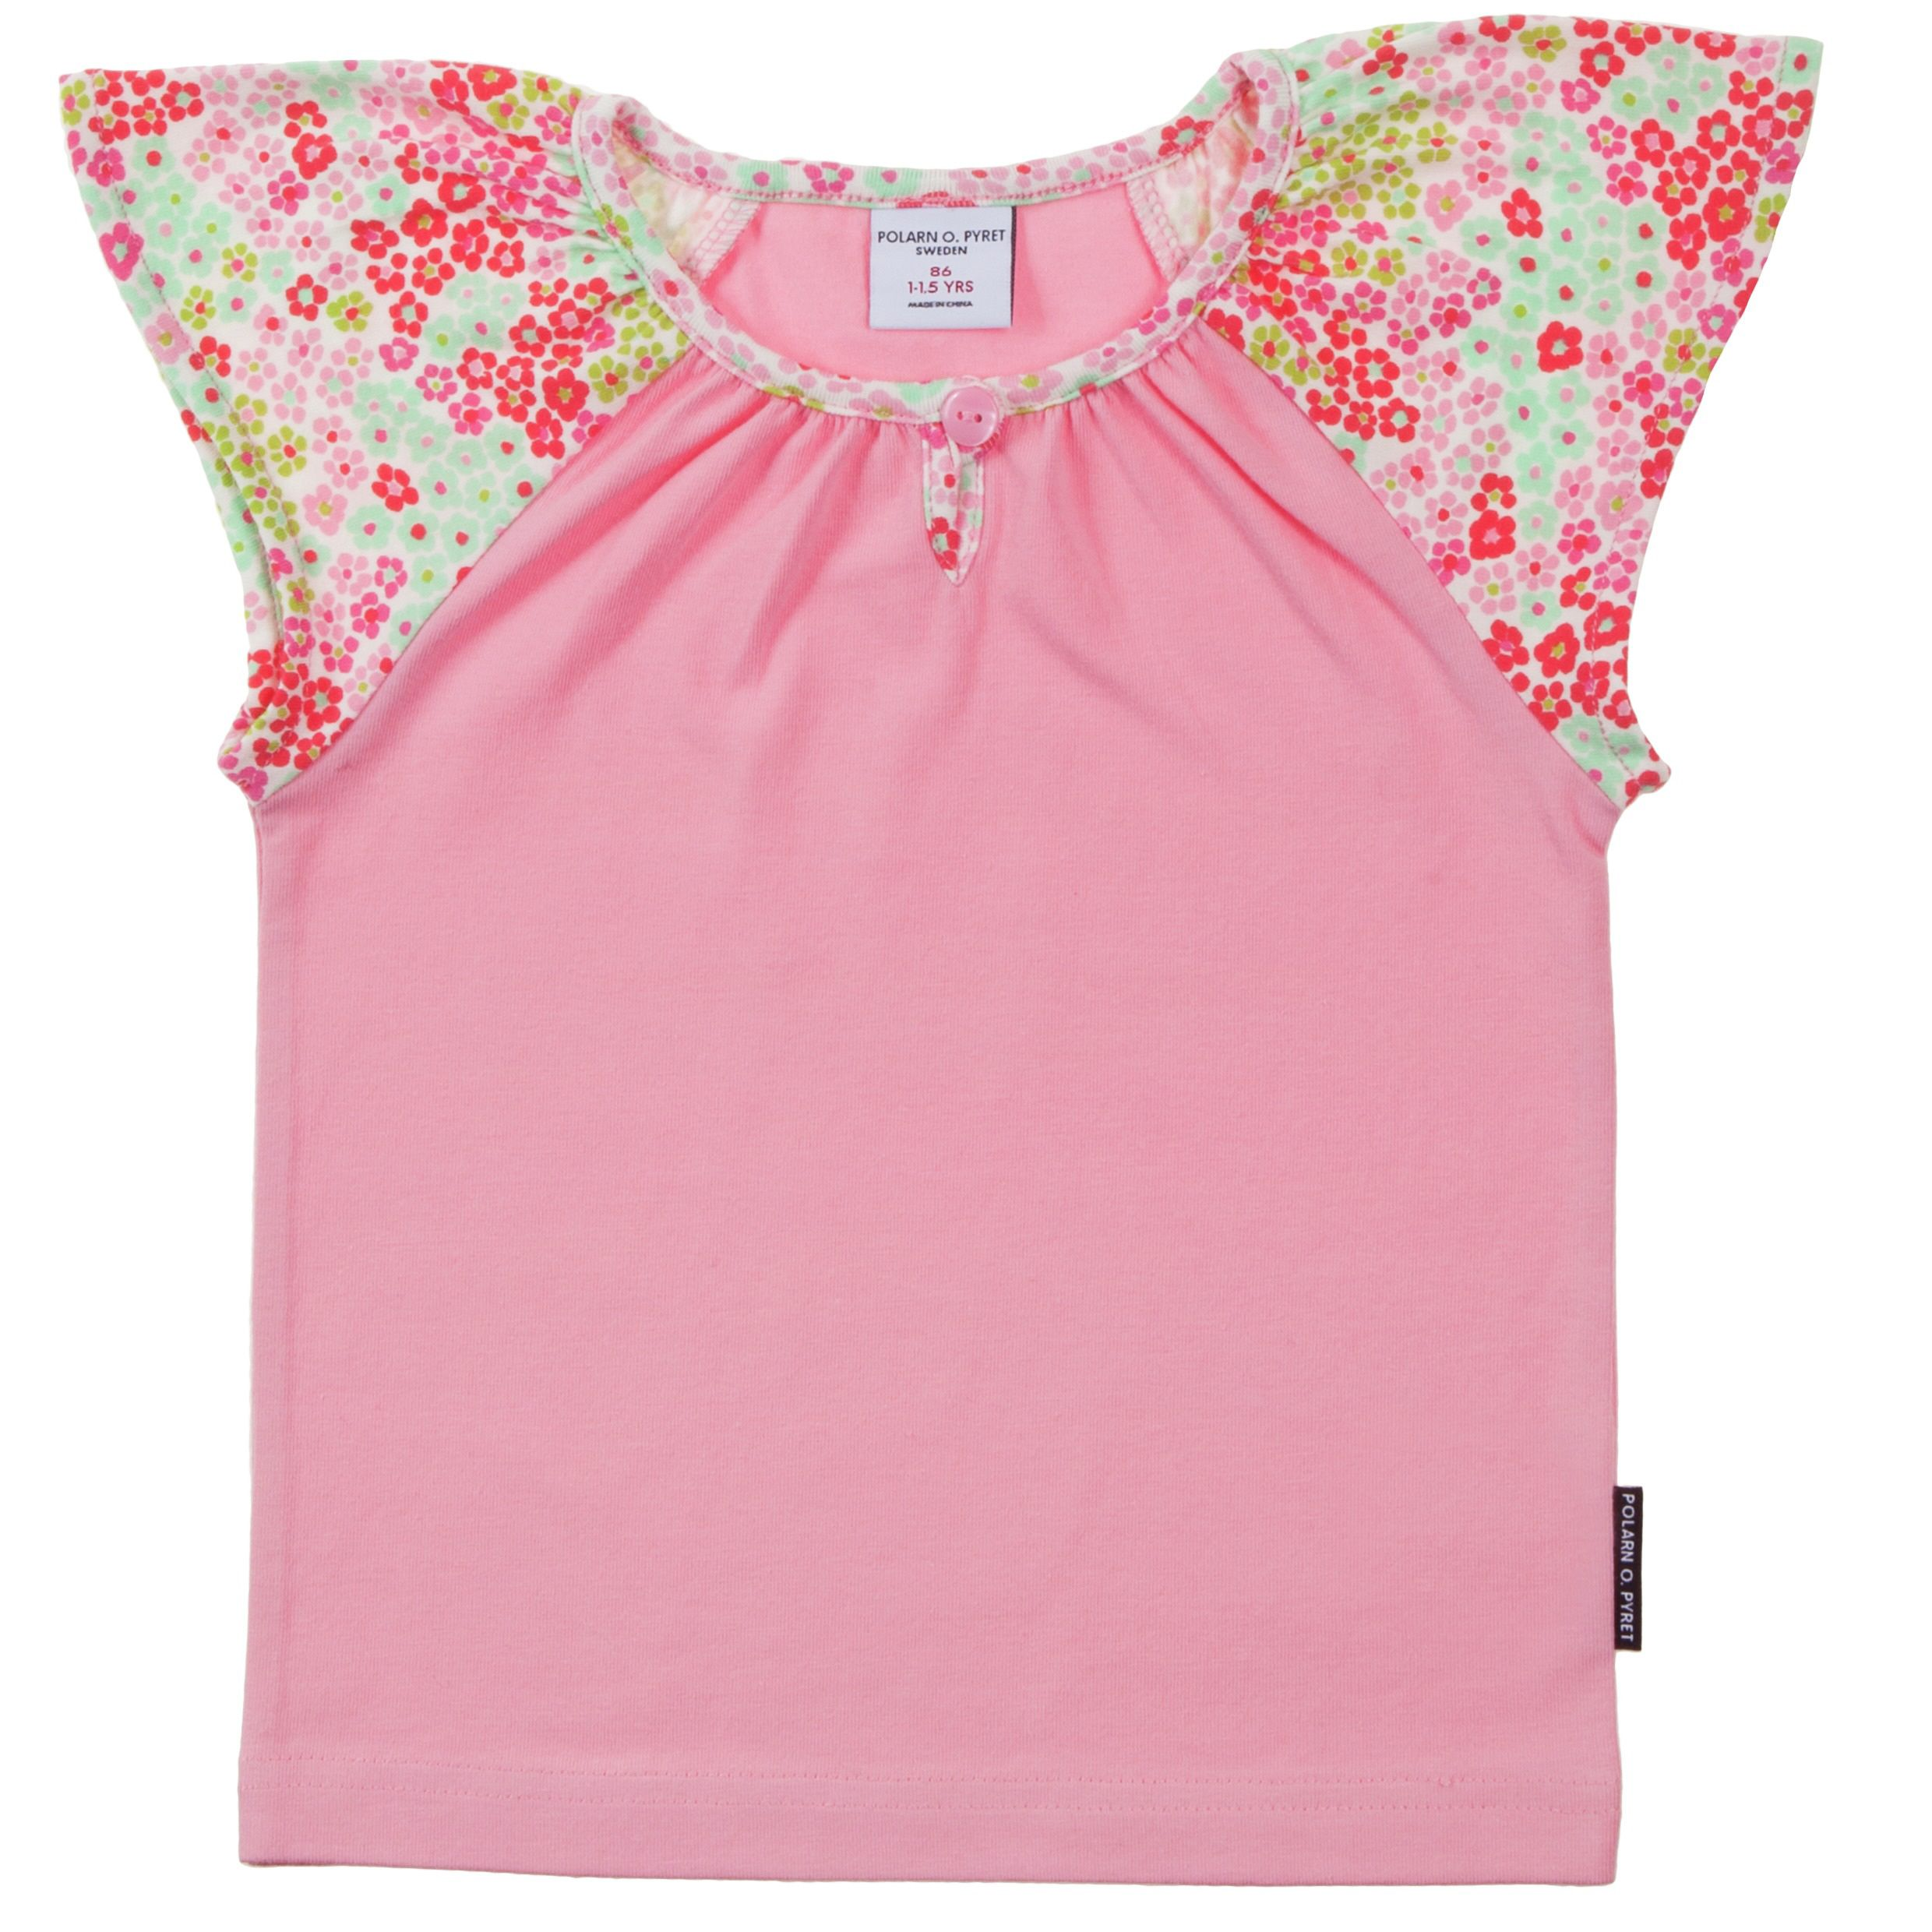 Baby girls pink ruffle sleeve top